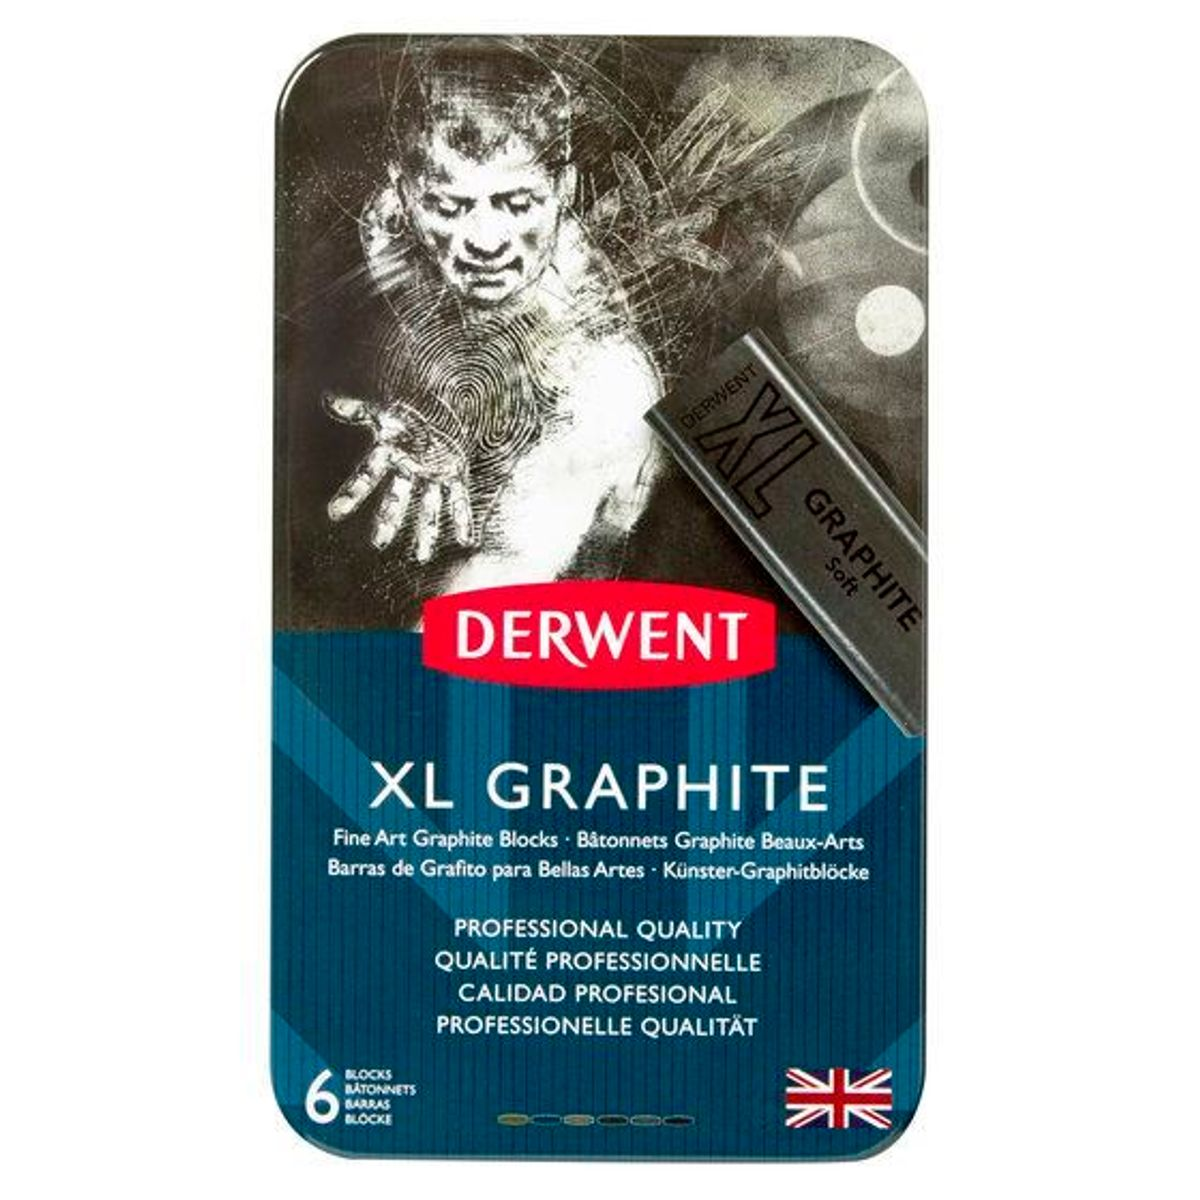 XL GRAPHITE KIT C/ 6 CORES